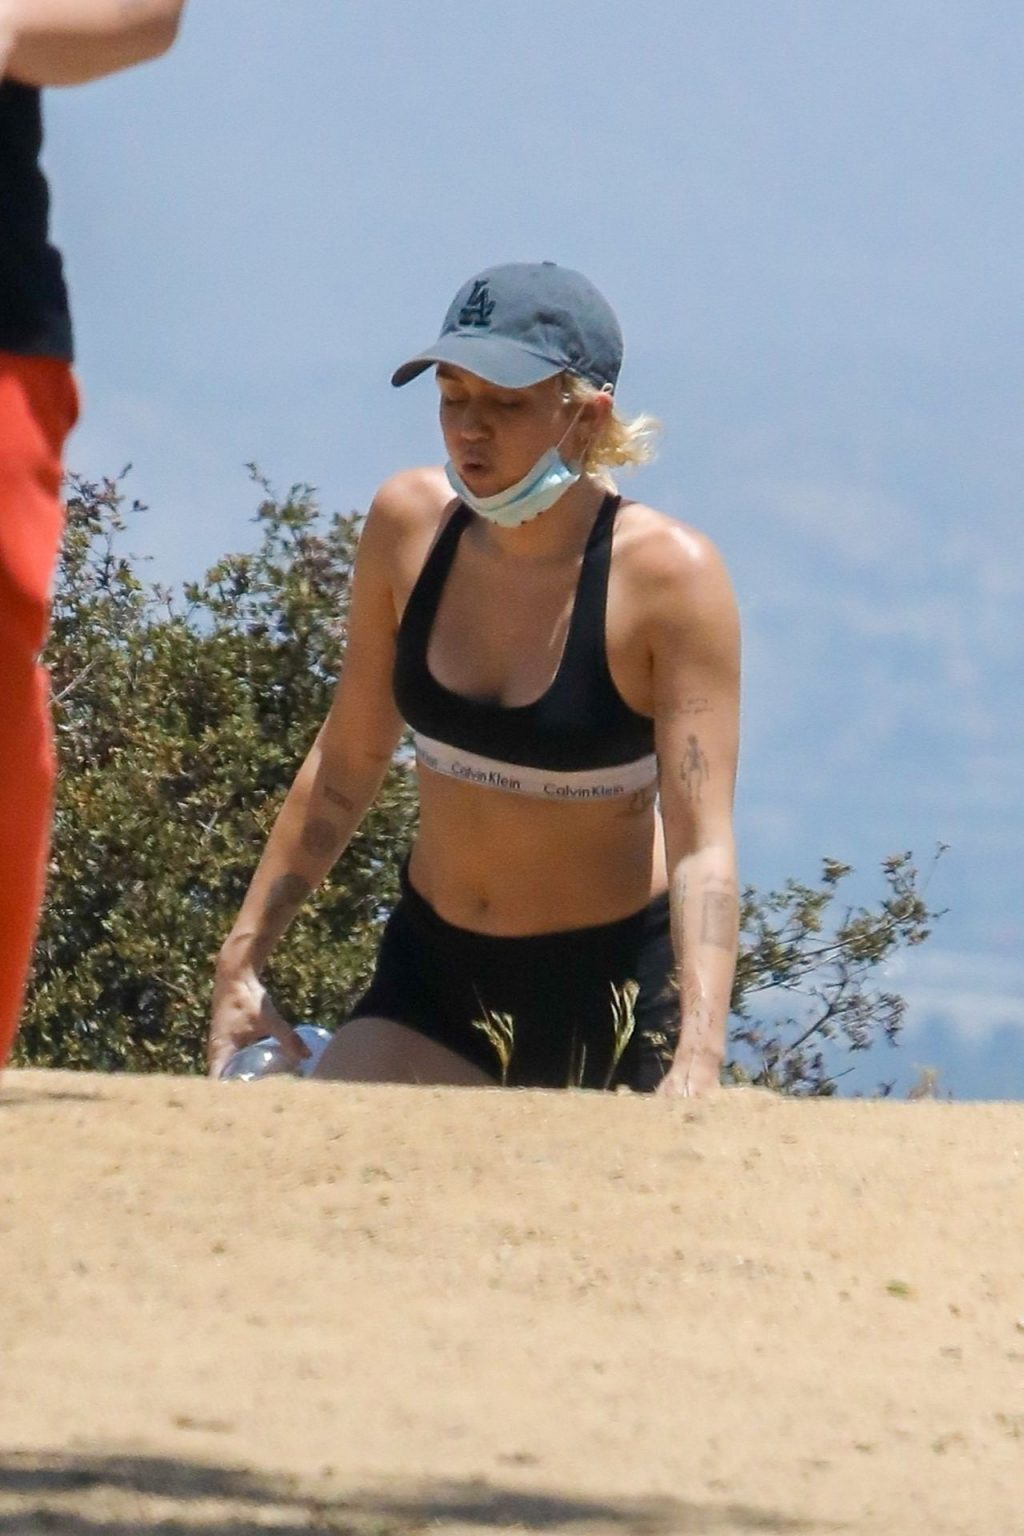 Miley Cyrus & Cody Simpson Go Hiking with their Dog in LA (10 Photos)